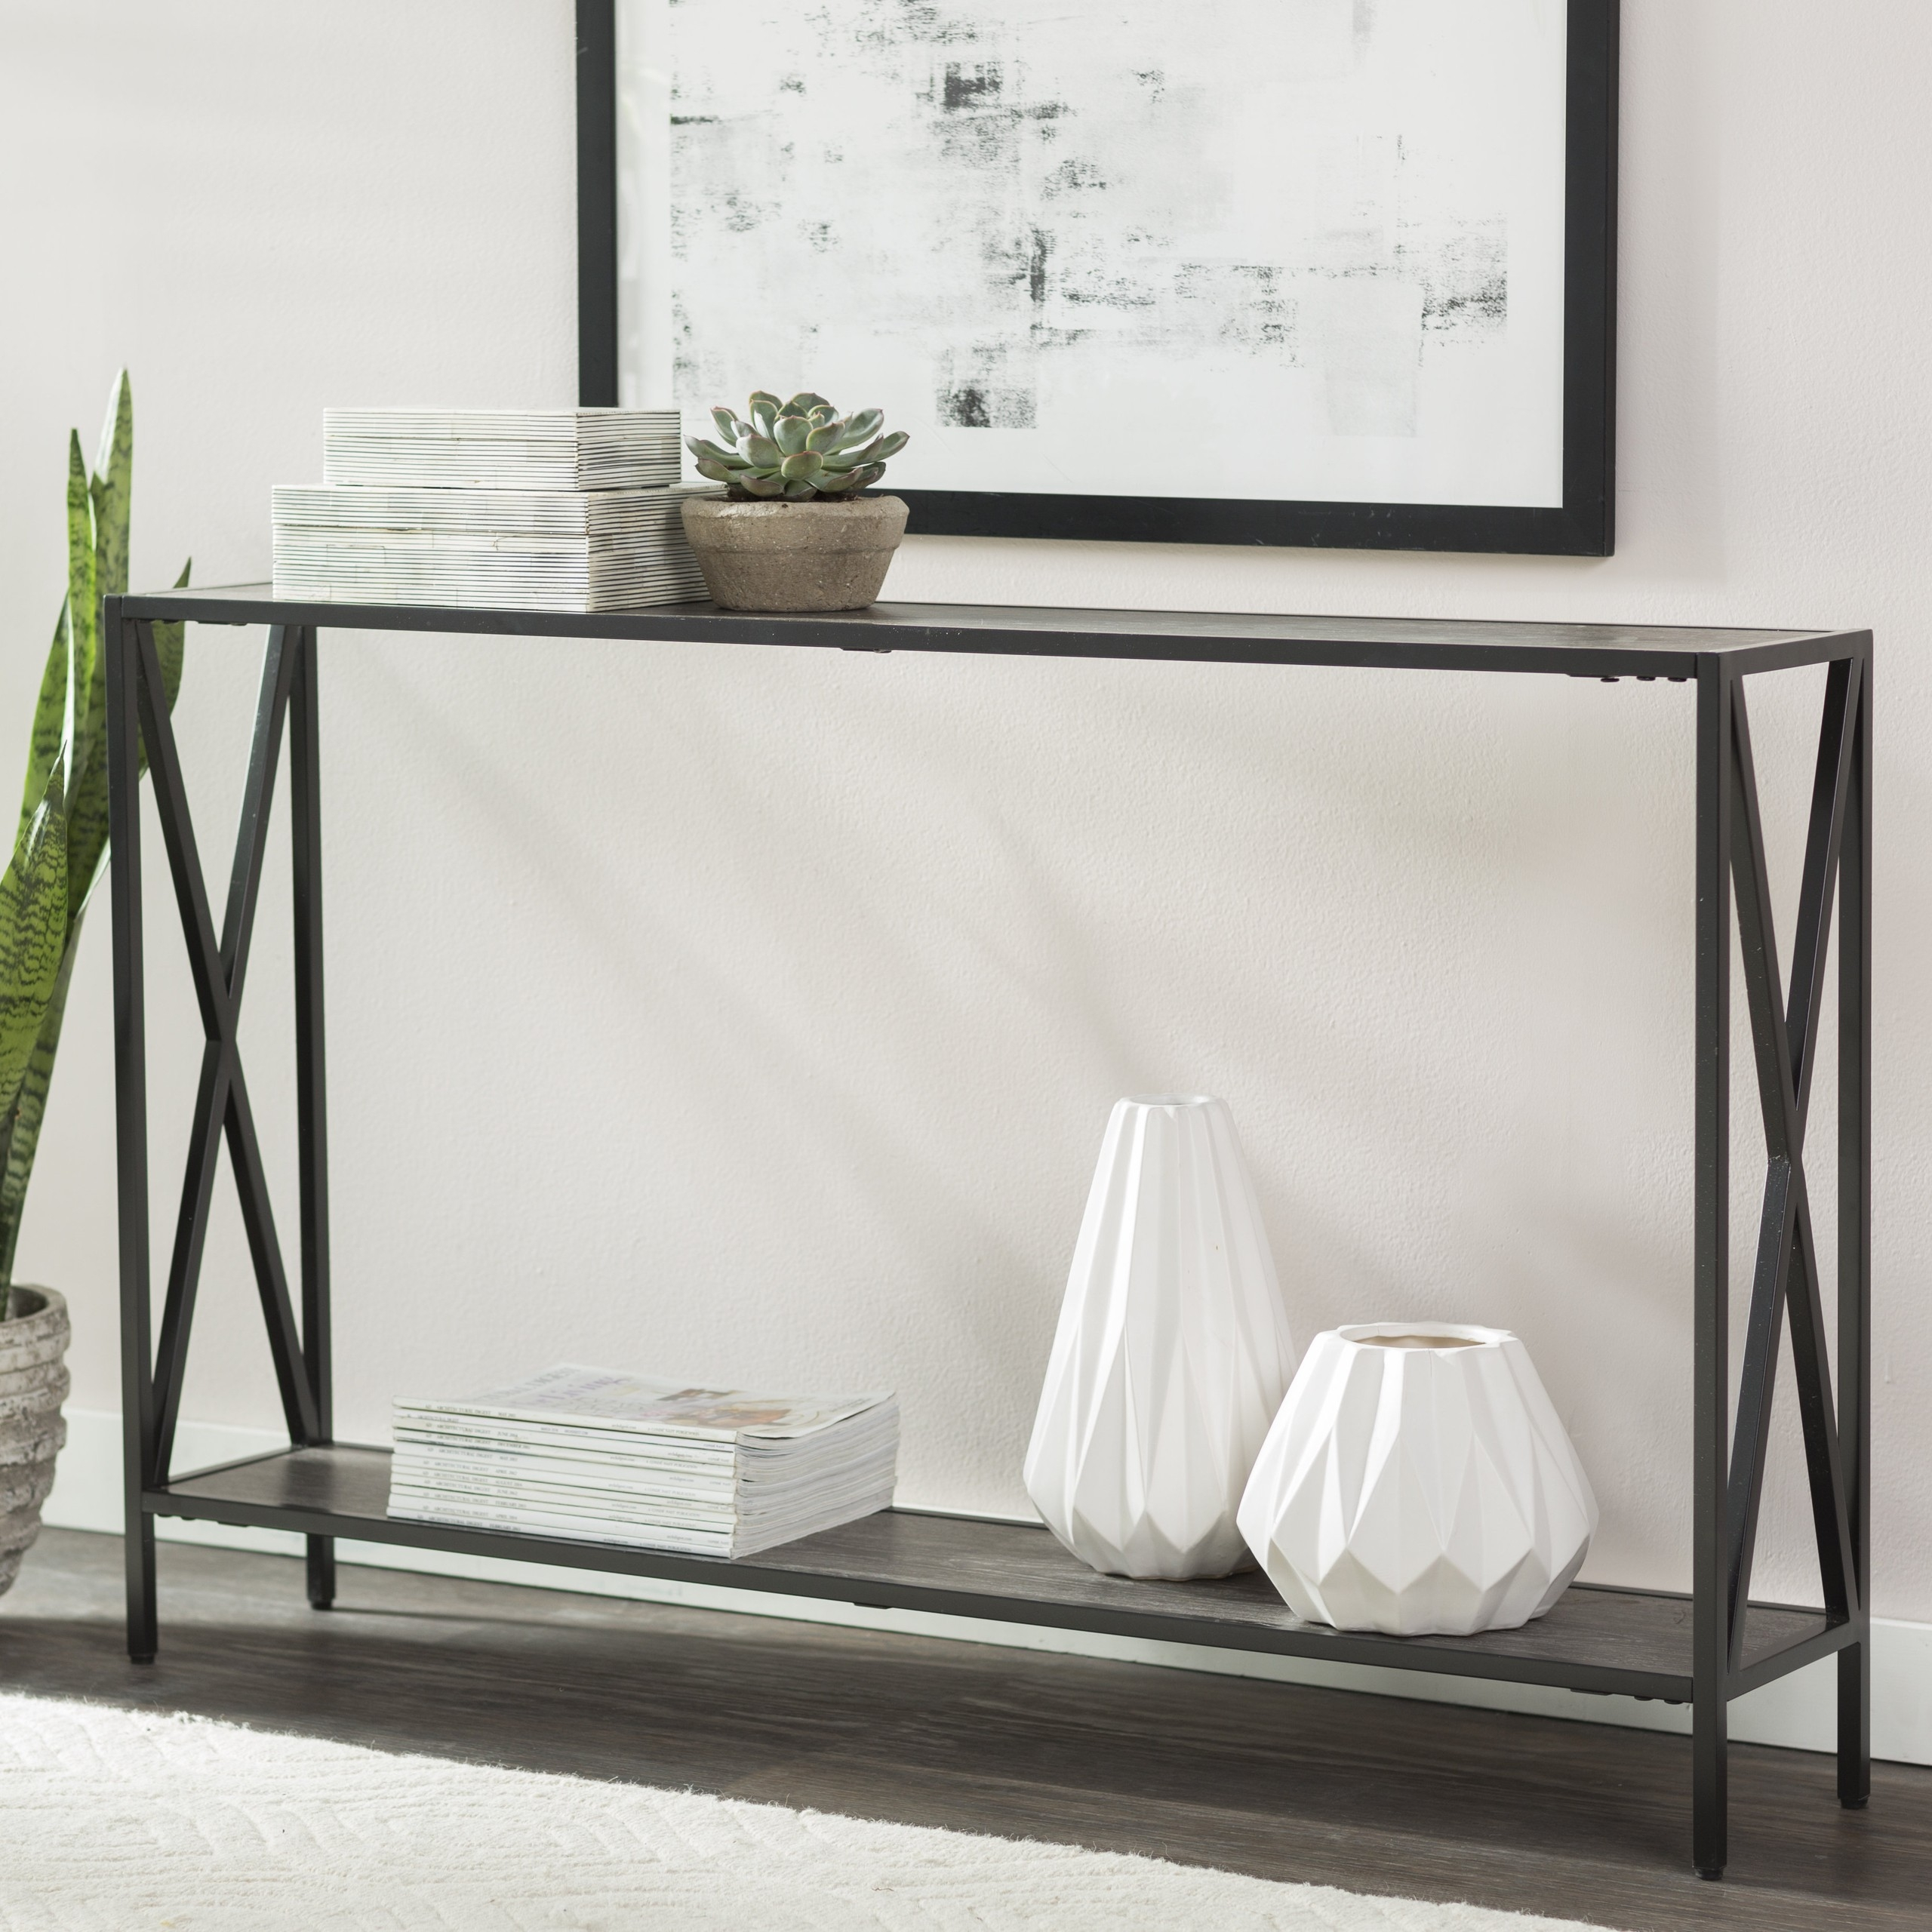 How To Choose A Console Table With Storage Foter